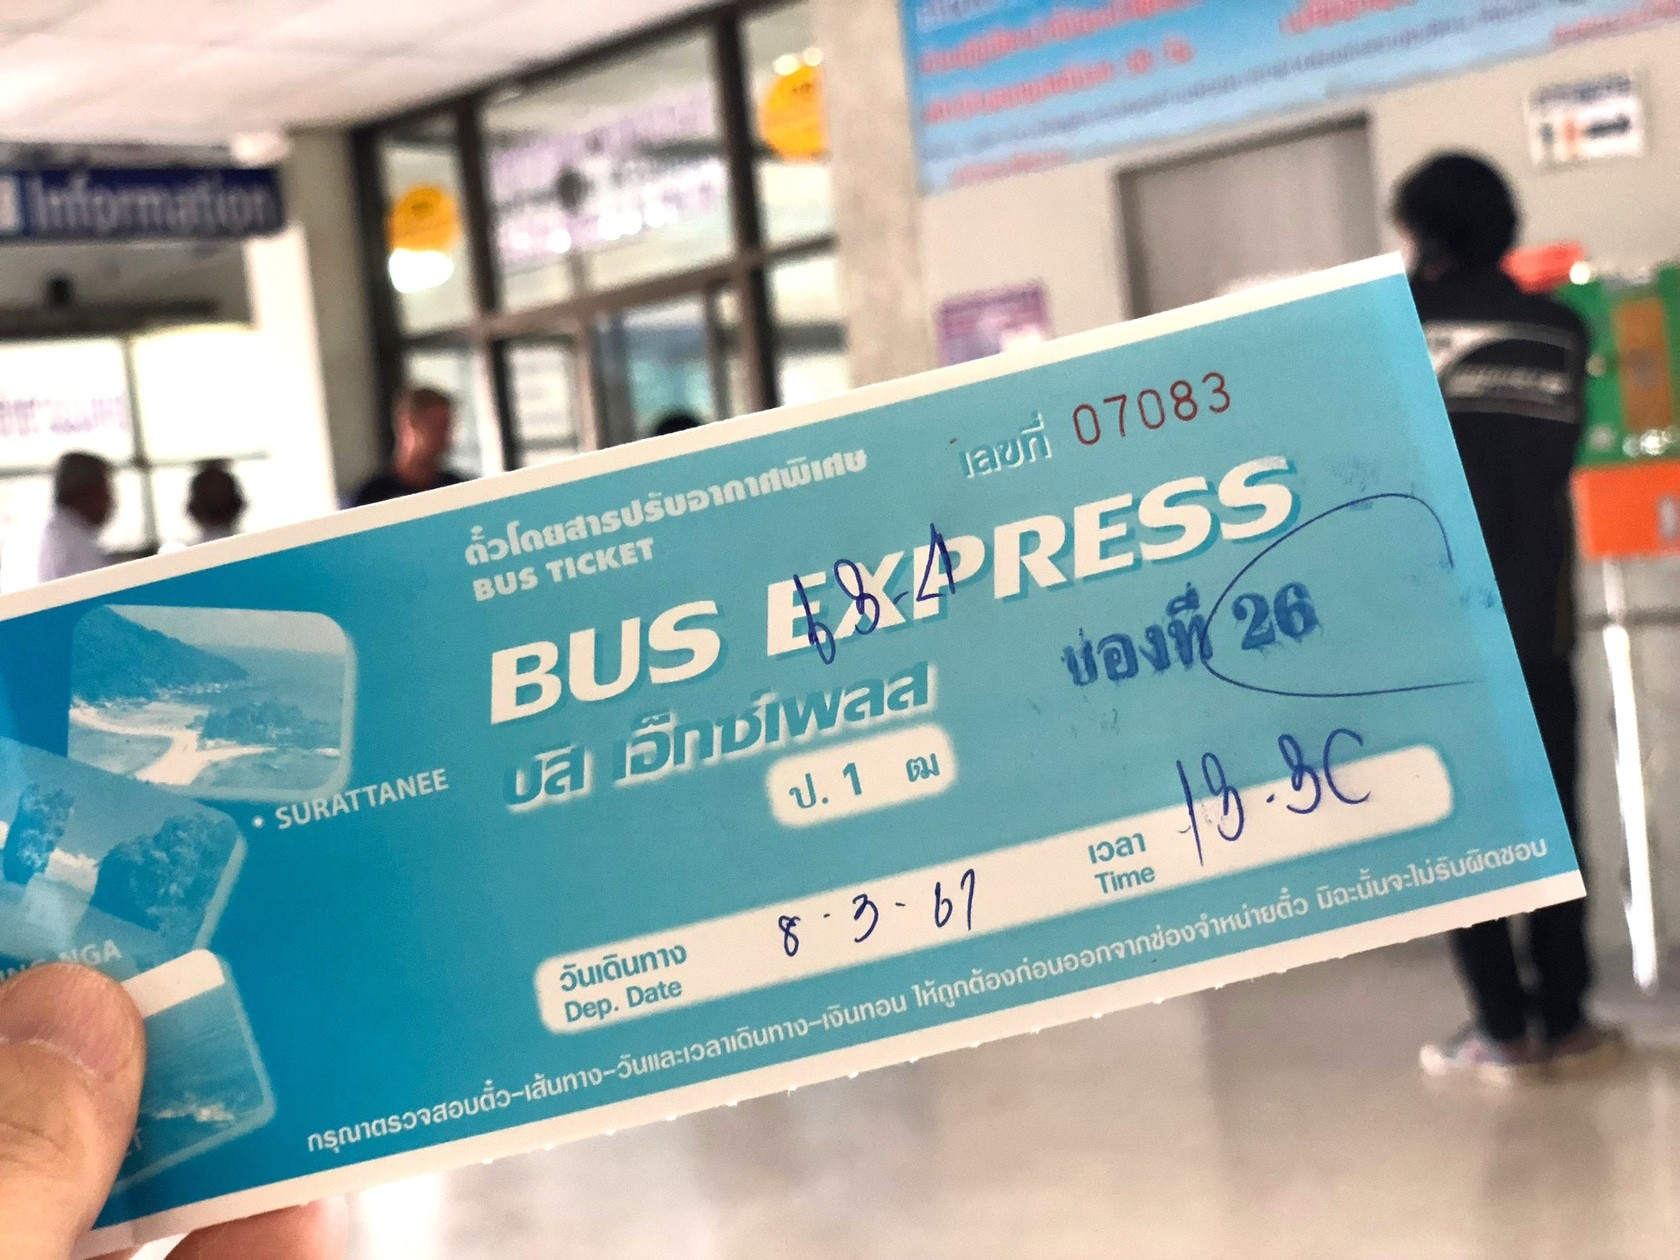 Top 10 Things to know about taking a bus from Phuket to Bangkok (or back) | The Thaiger